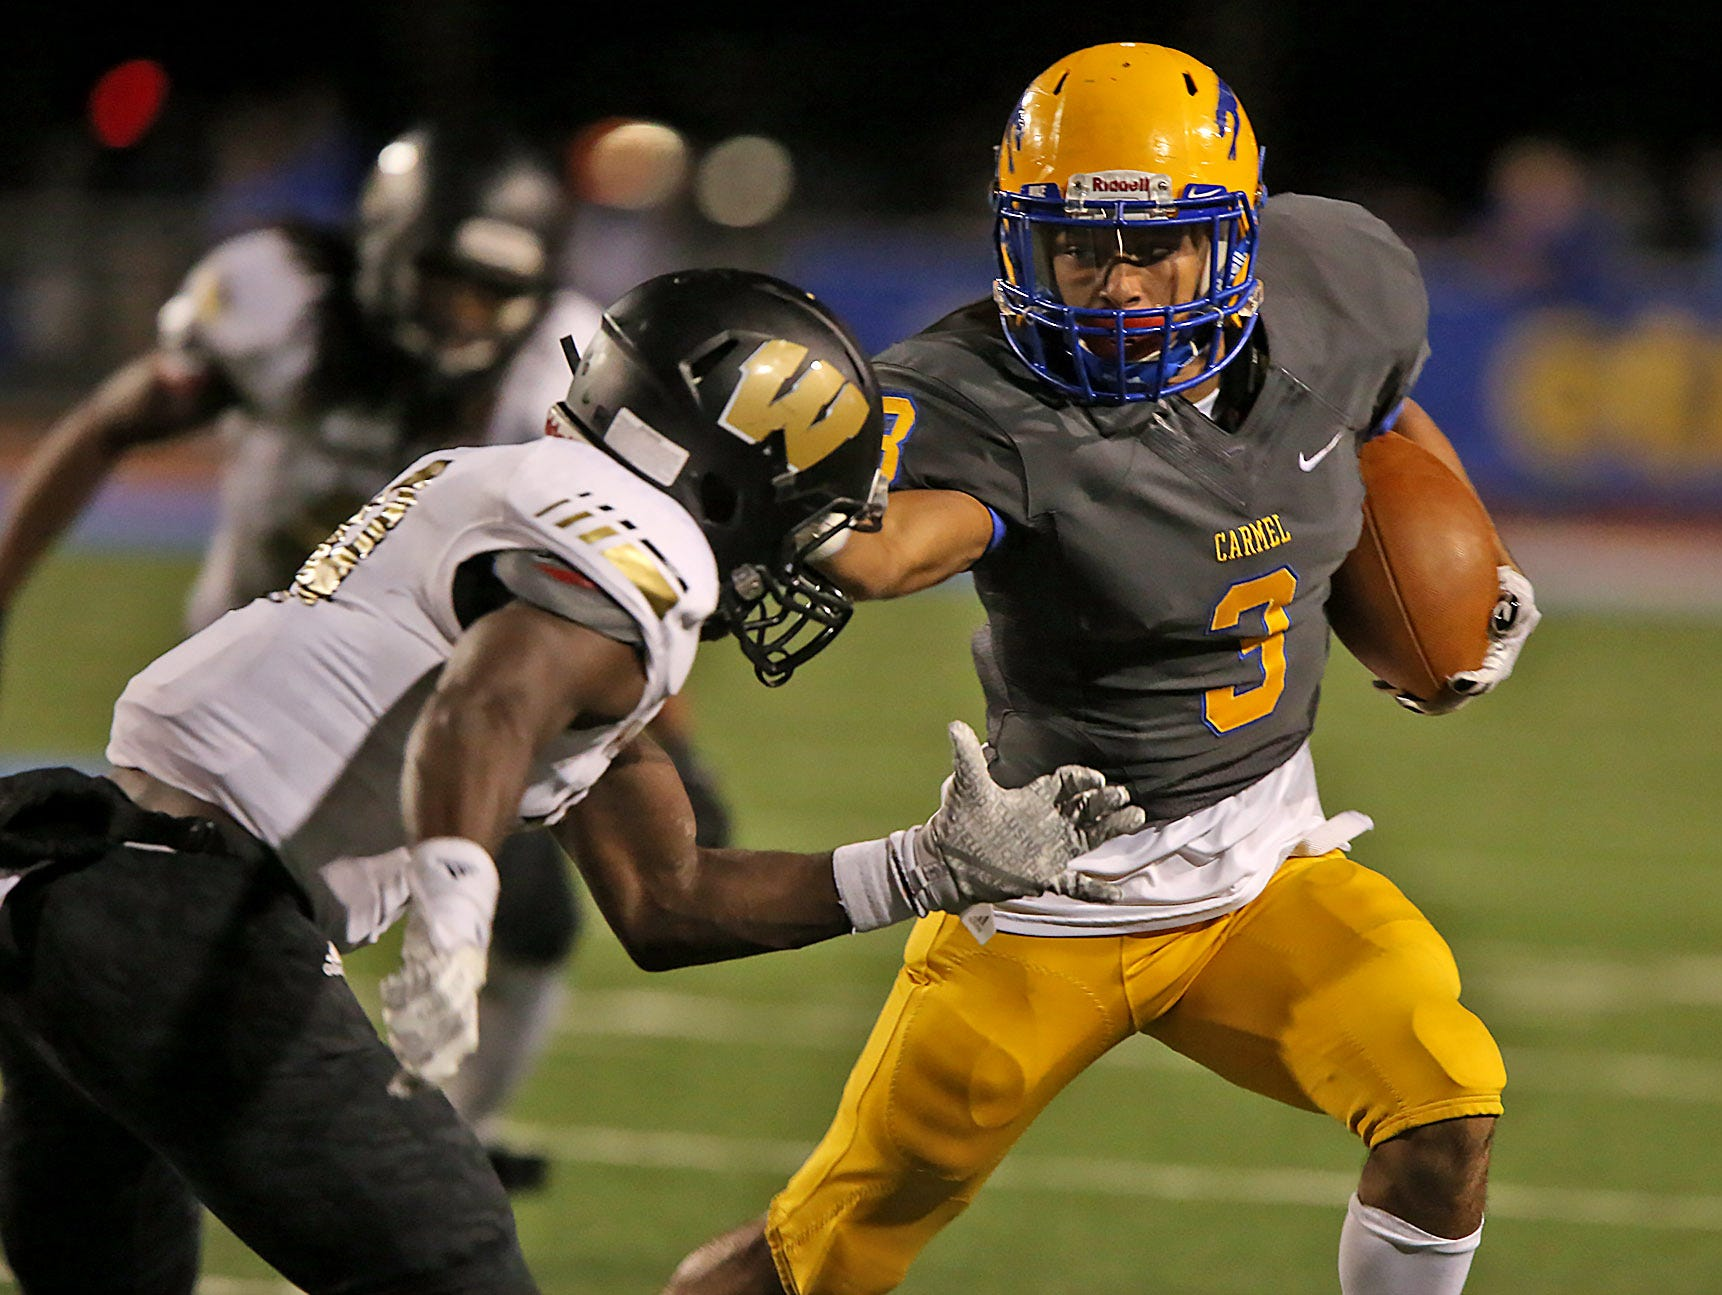 Carmel's Jalen Walker makes a run as Warren Central's Darien Rivers tries to stop him Oct. 9, 2015. The junior wide receiver committed to the University of Cincinnati.